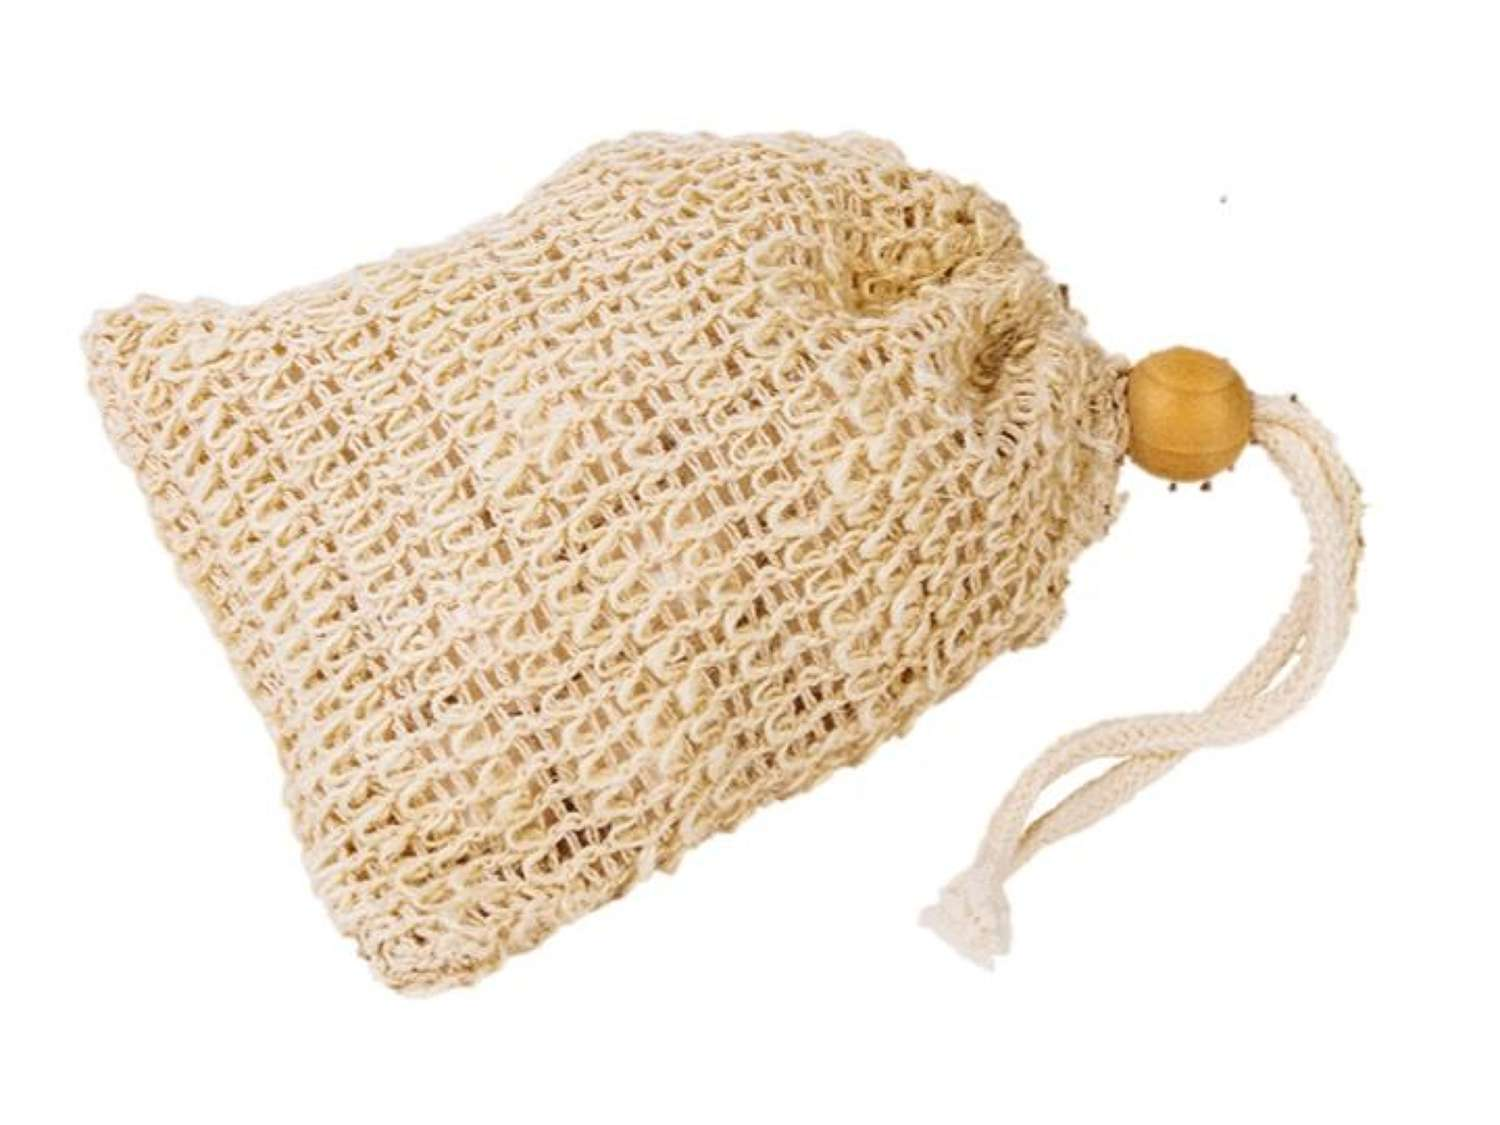 Sisal exfoliator bag for soap remnants